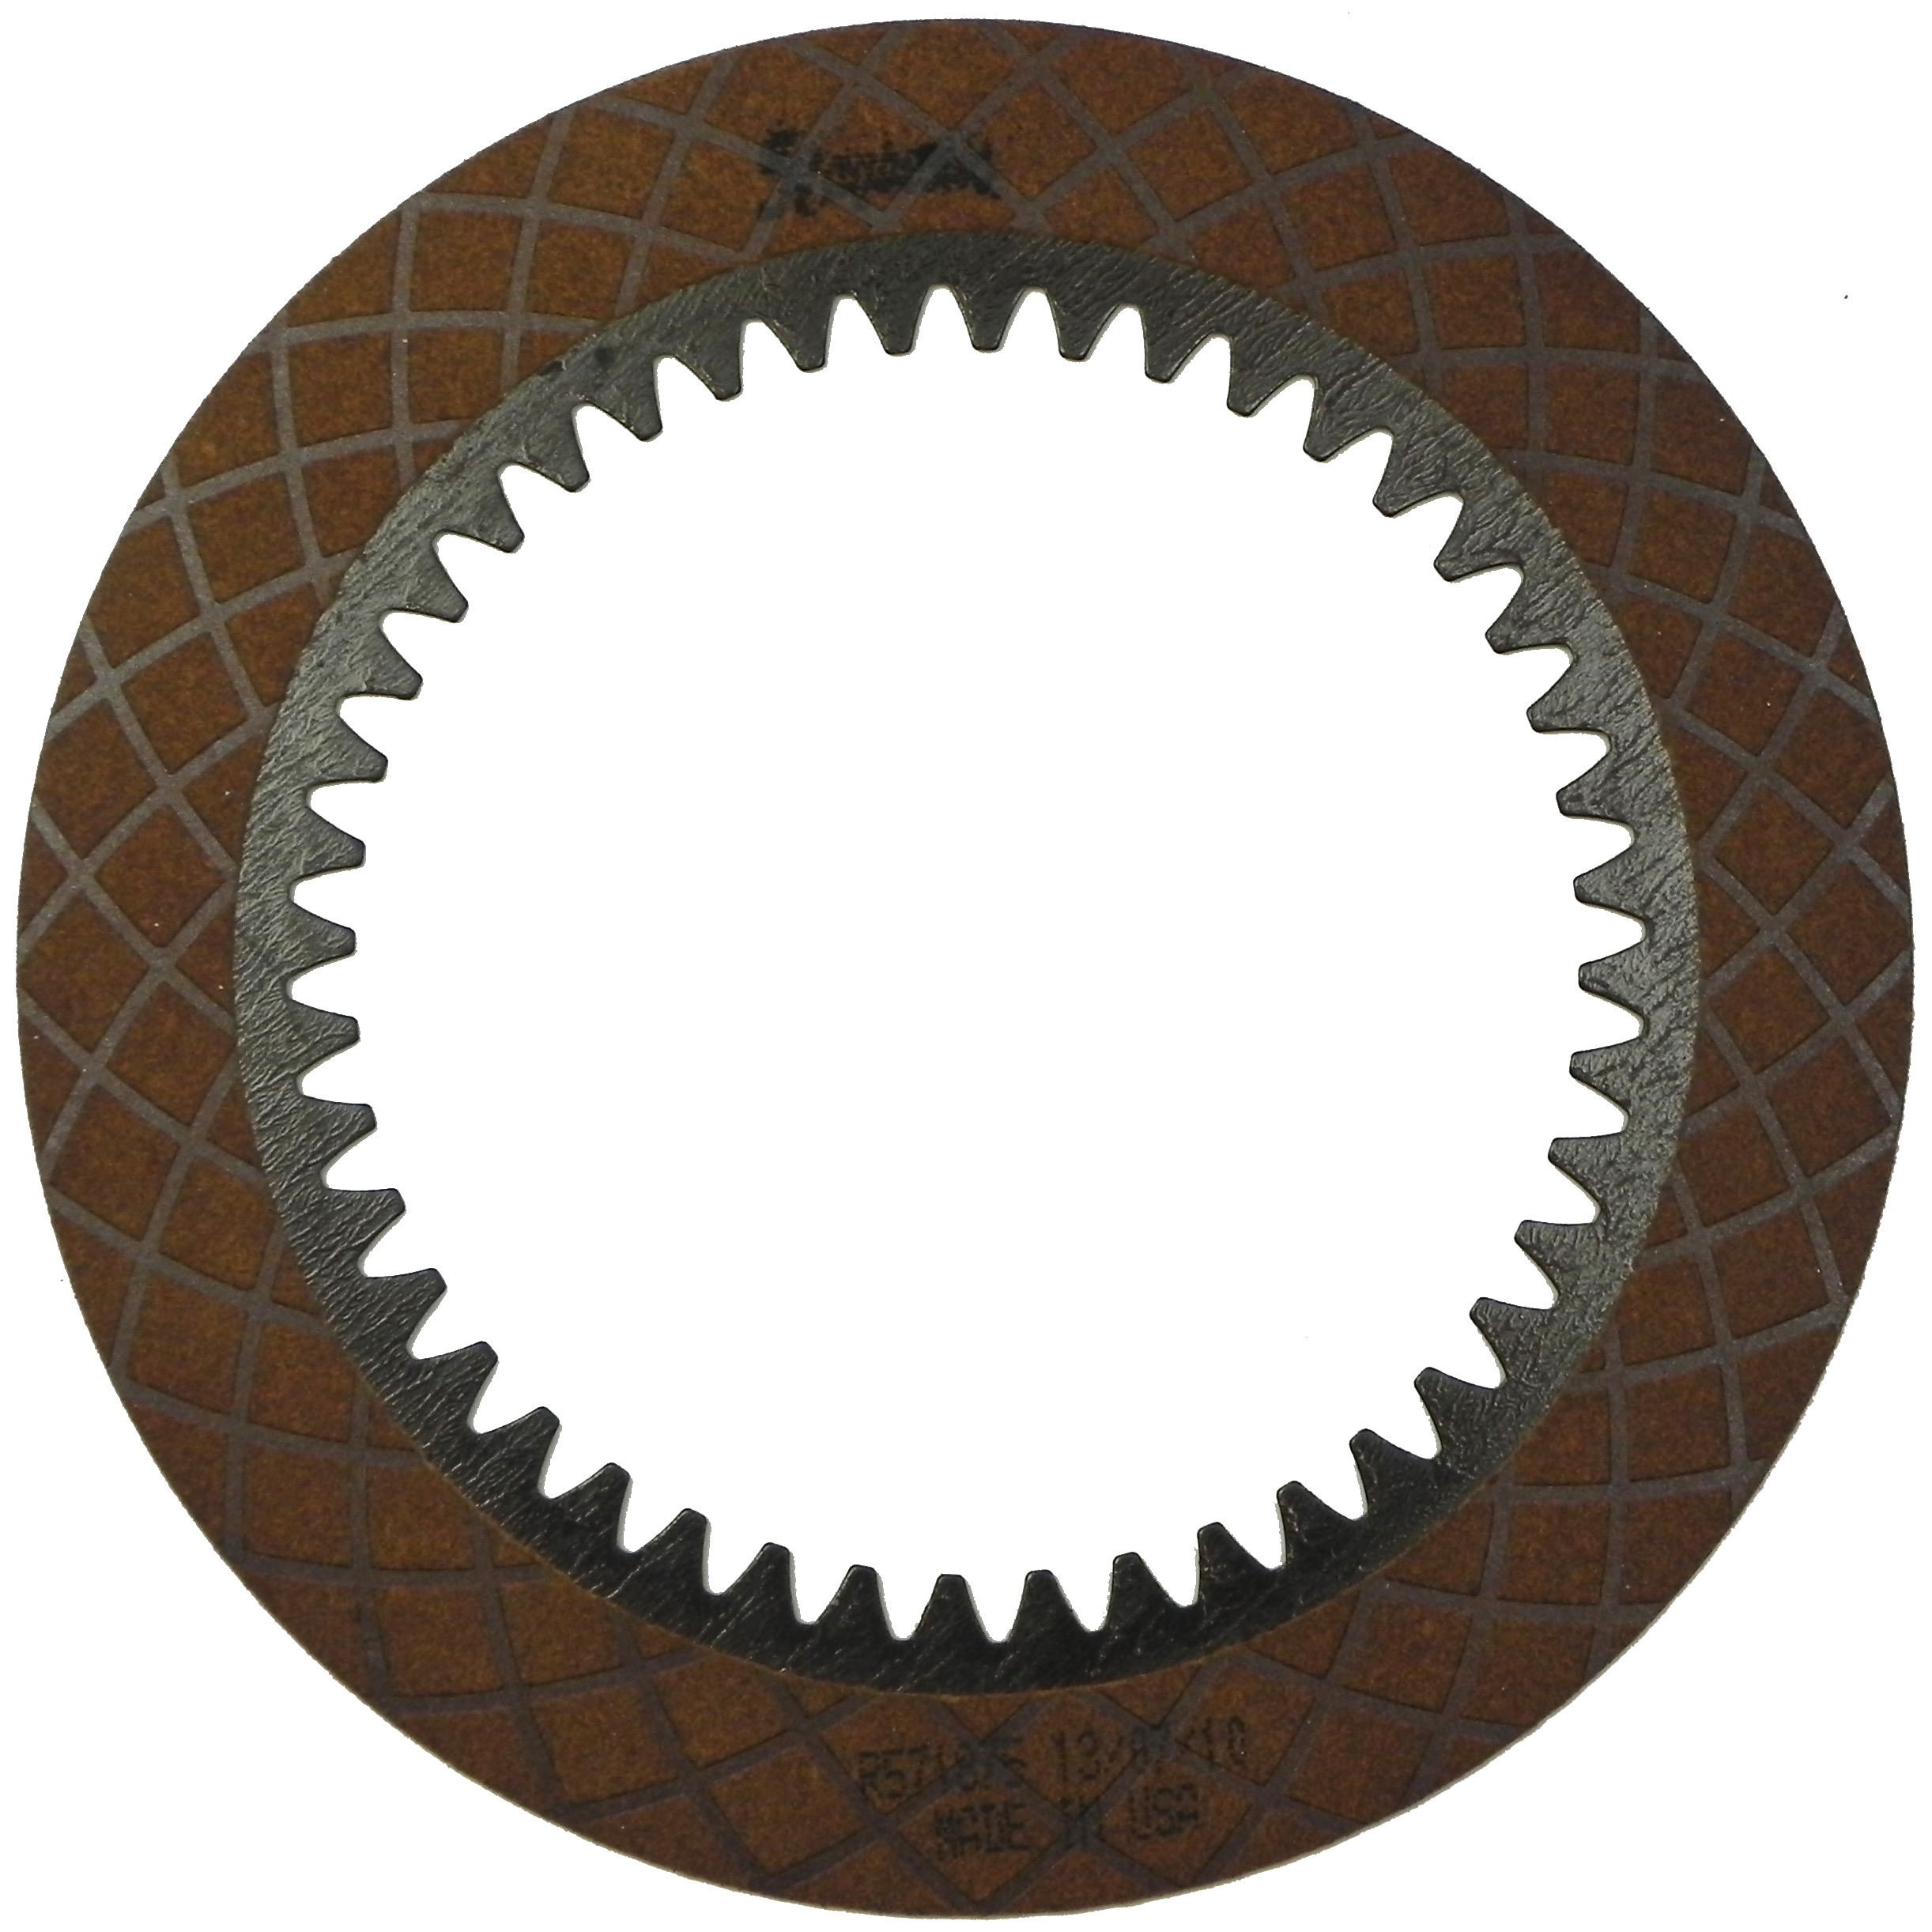 MDPA, MDRA 4th, 5th GPX Friction Clutch Plate